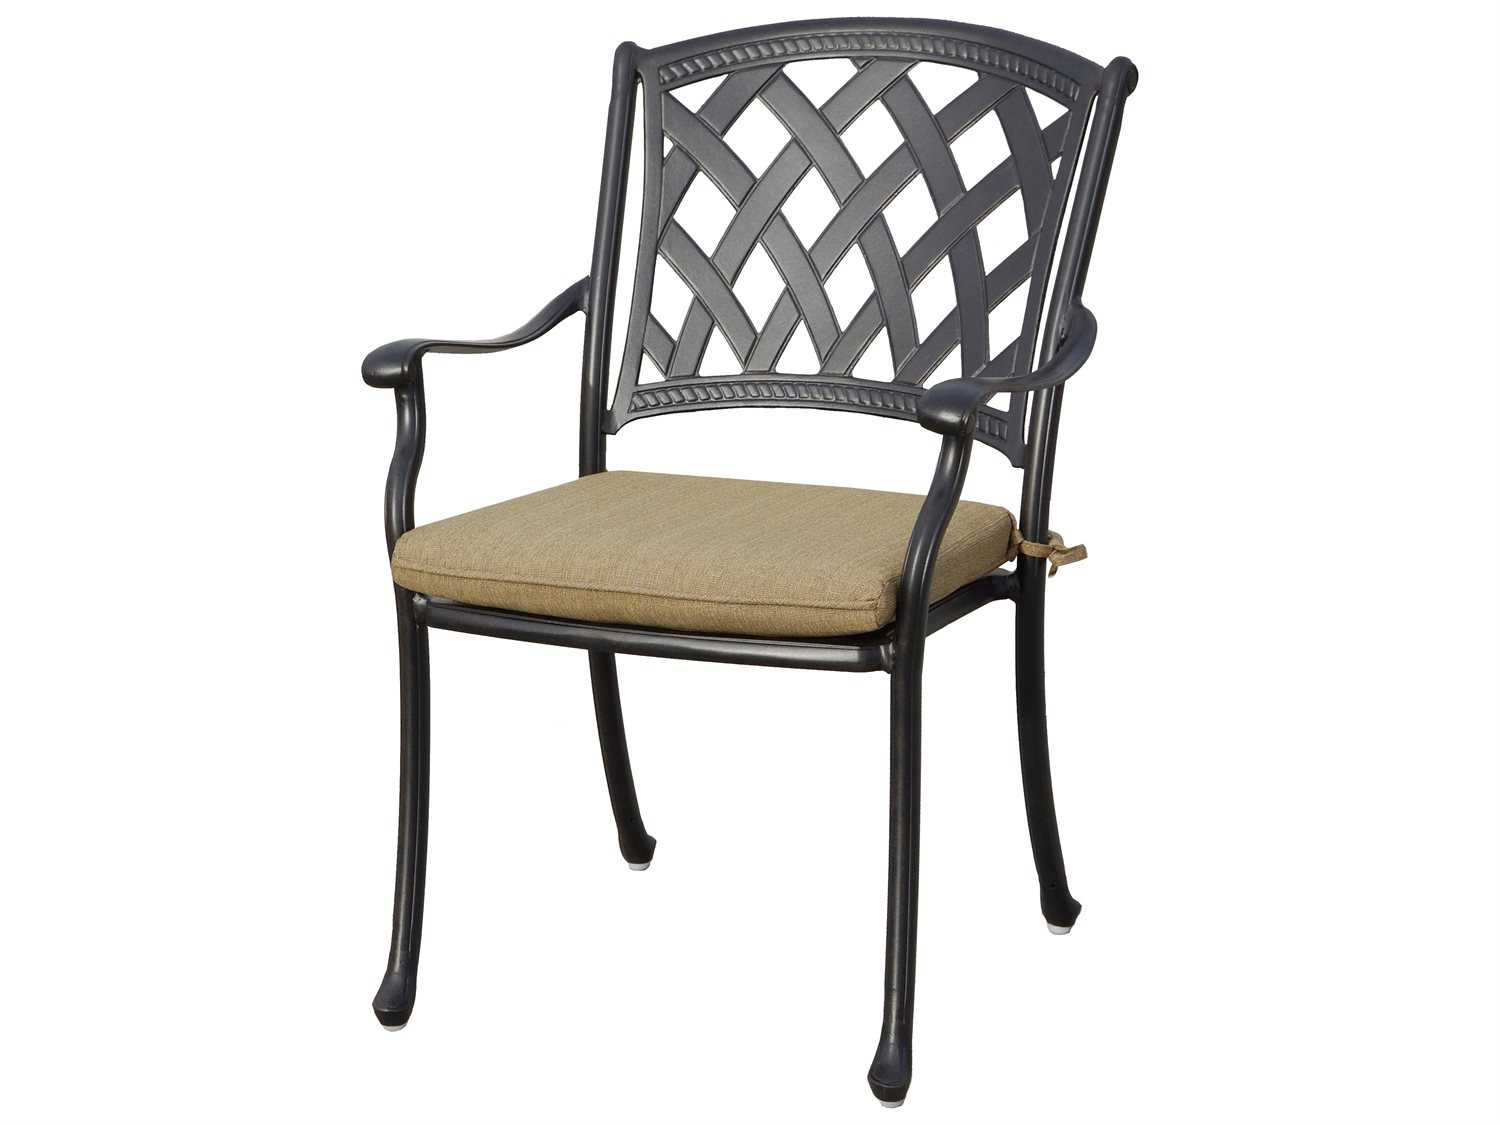 Darlee Ocean View Cast Aluminum Dining Chairs With Sesame Cushions Is For Four